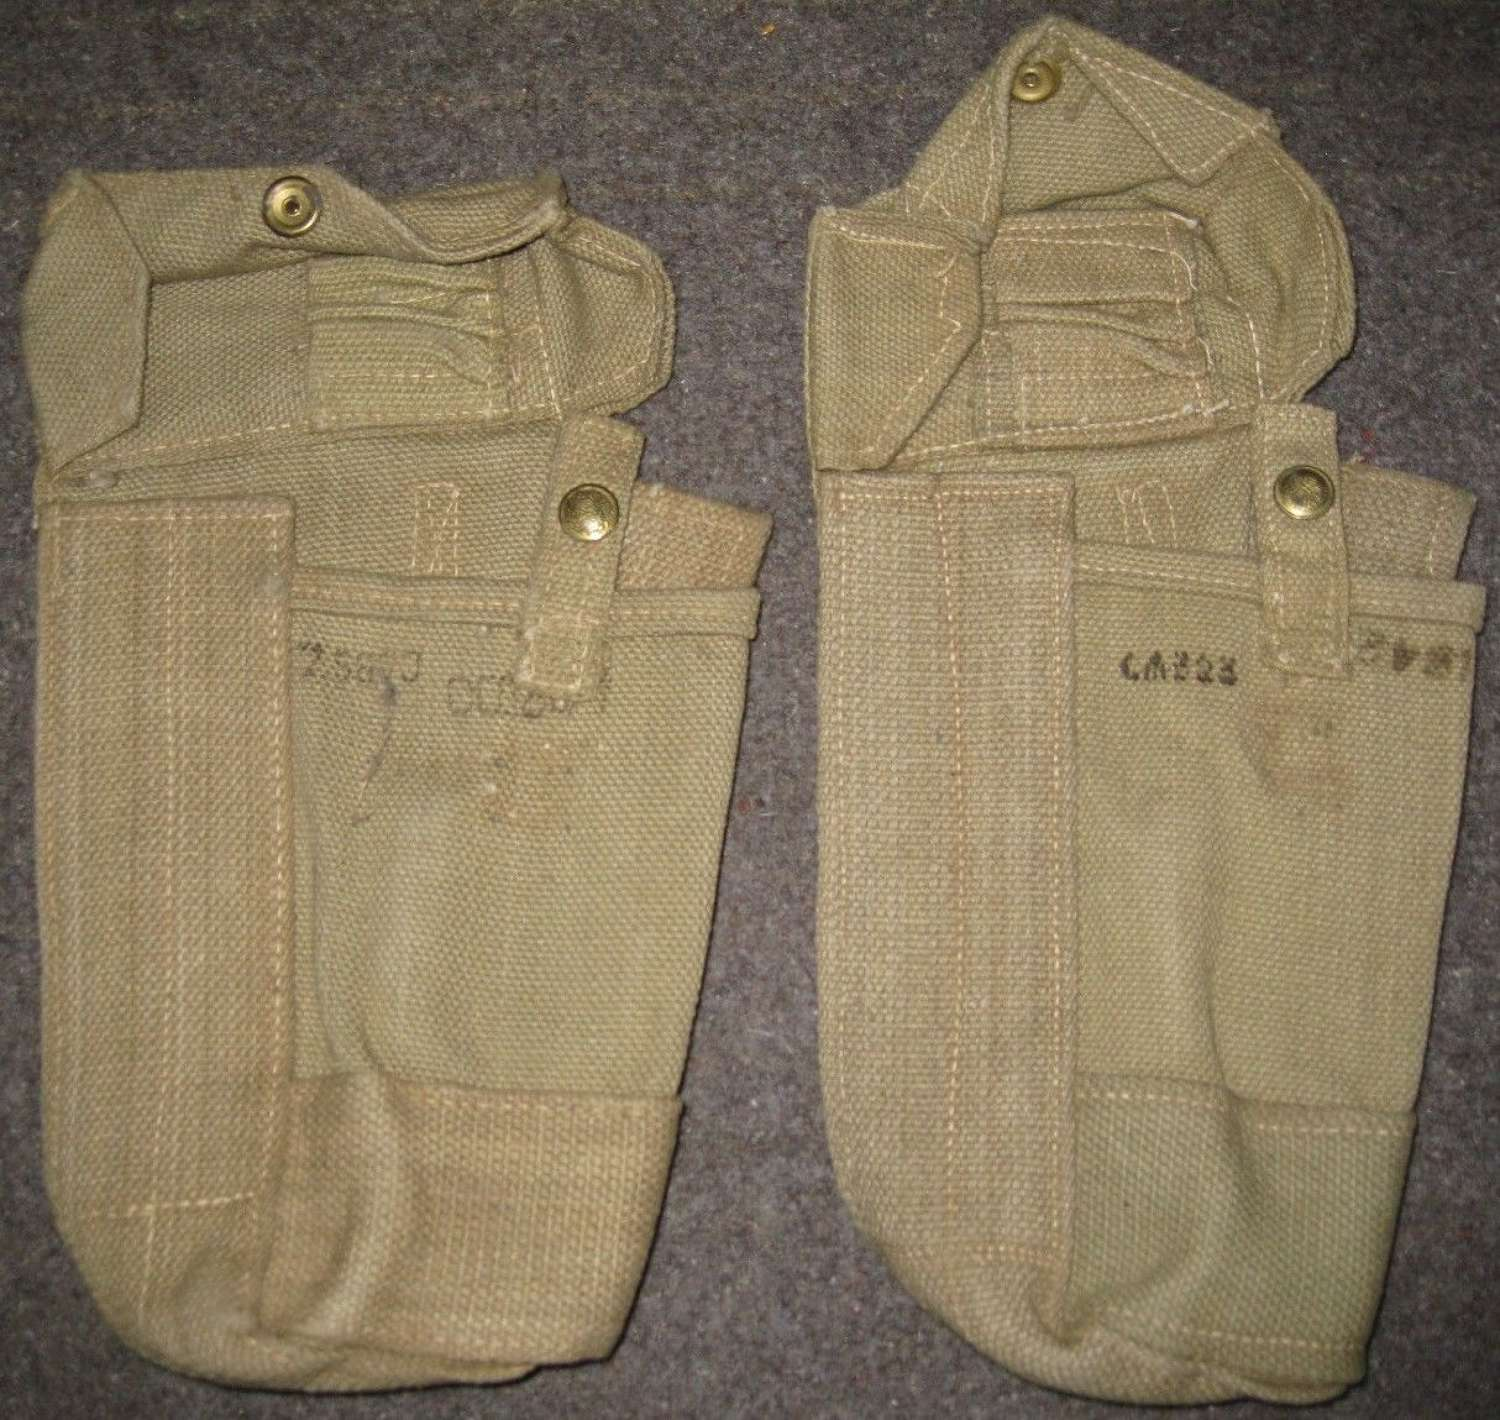 A GOOD MINT PAIR OF MADE 37 PATTERN WEBBING AMMO POUCHES MKII